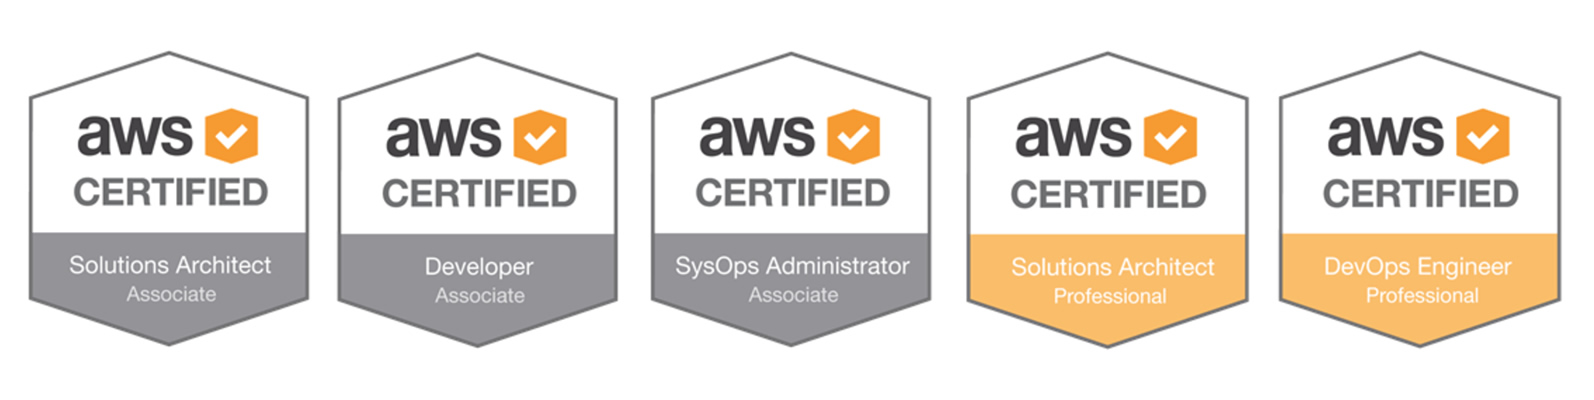 aws-certifications-5